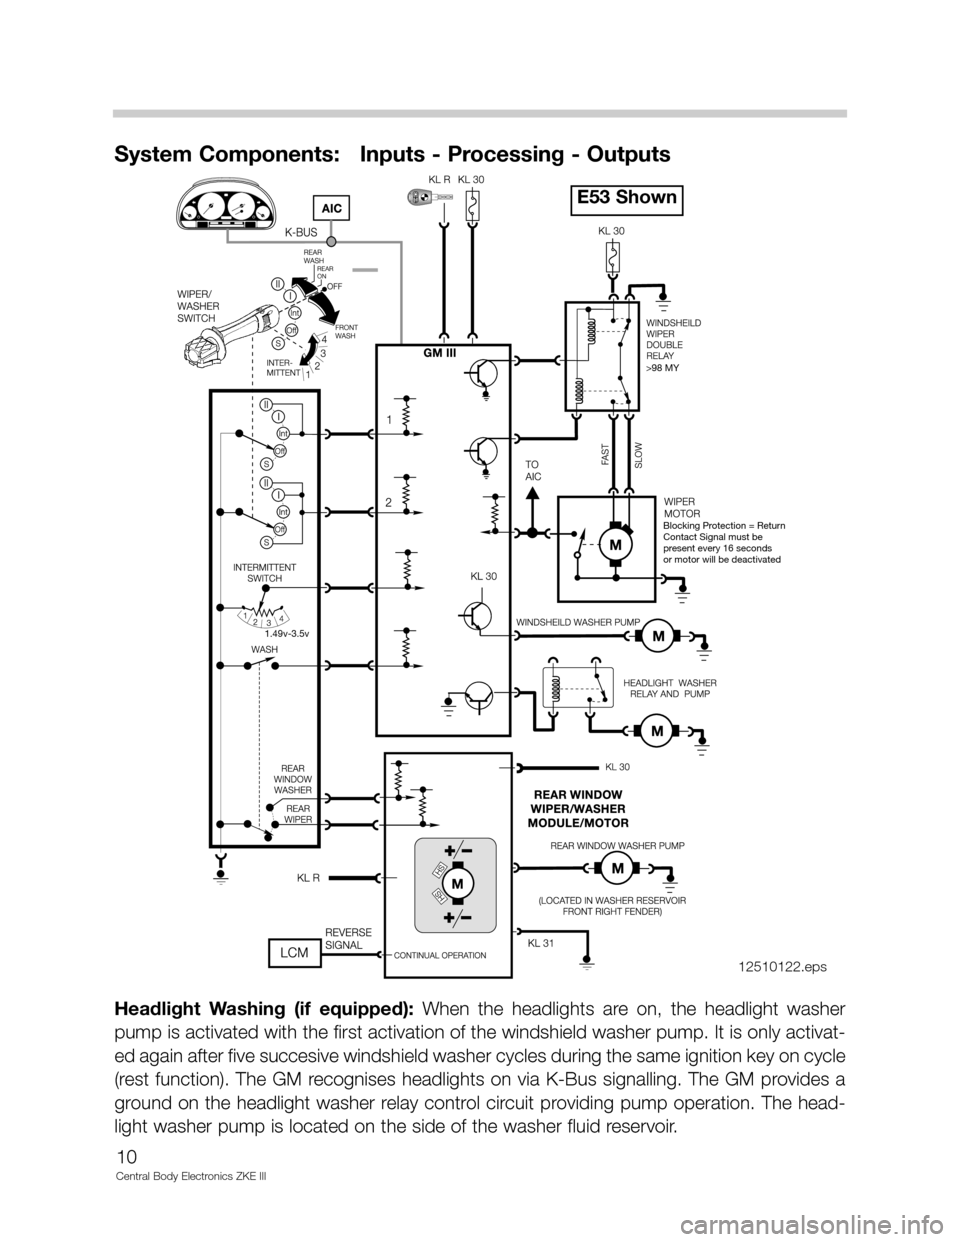 Bmw 740il 1998 E38 Central Body Electronics Zke Manual E66 Engine Diagram